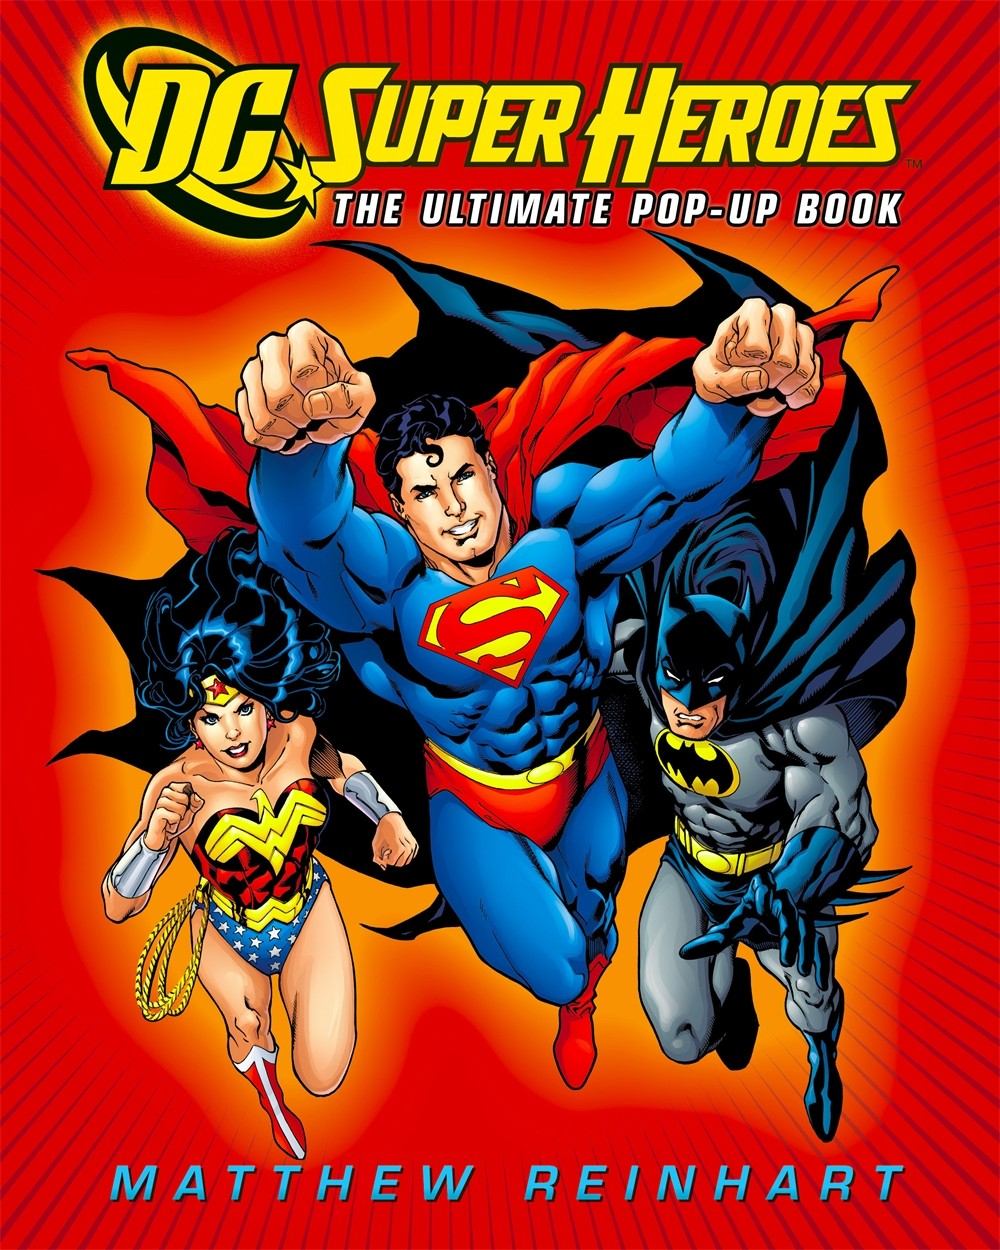 DC Super Heroes: The Ultimate Pop-Up Book by Matthew Reinhart, ISBN: 9780316019989